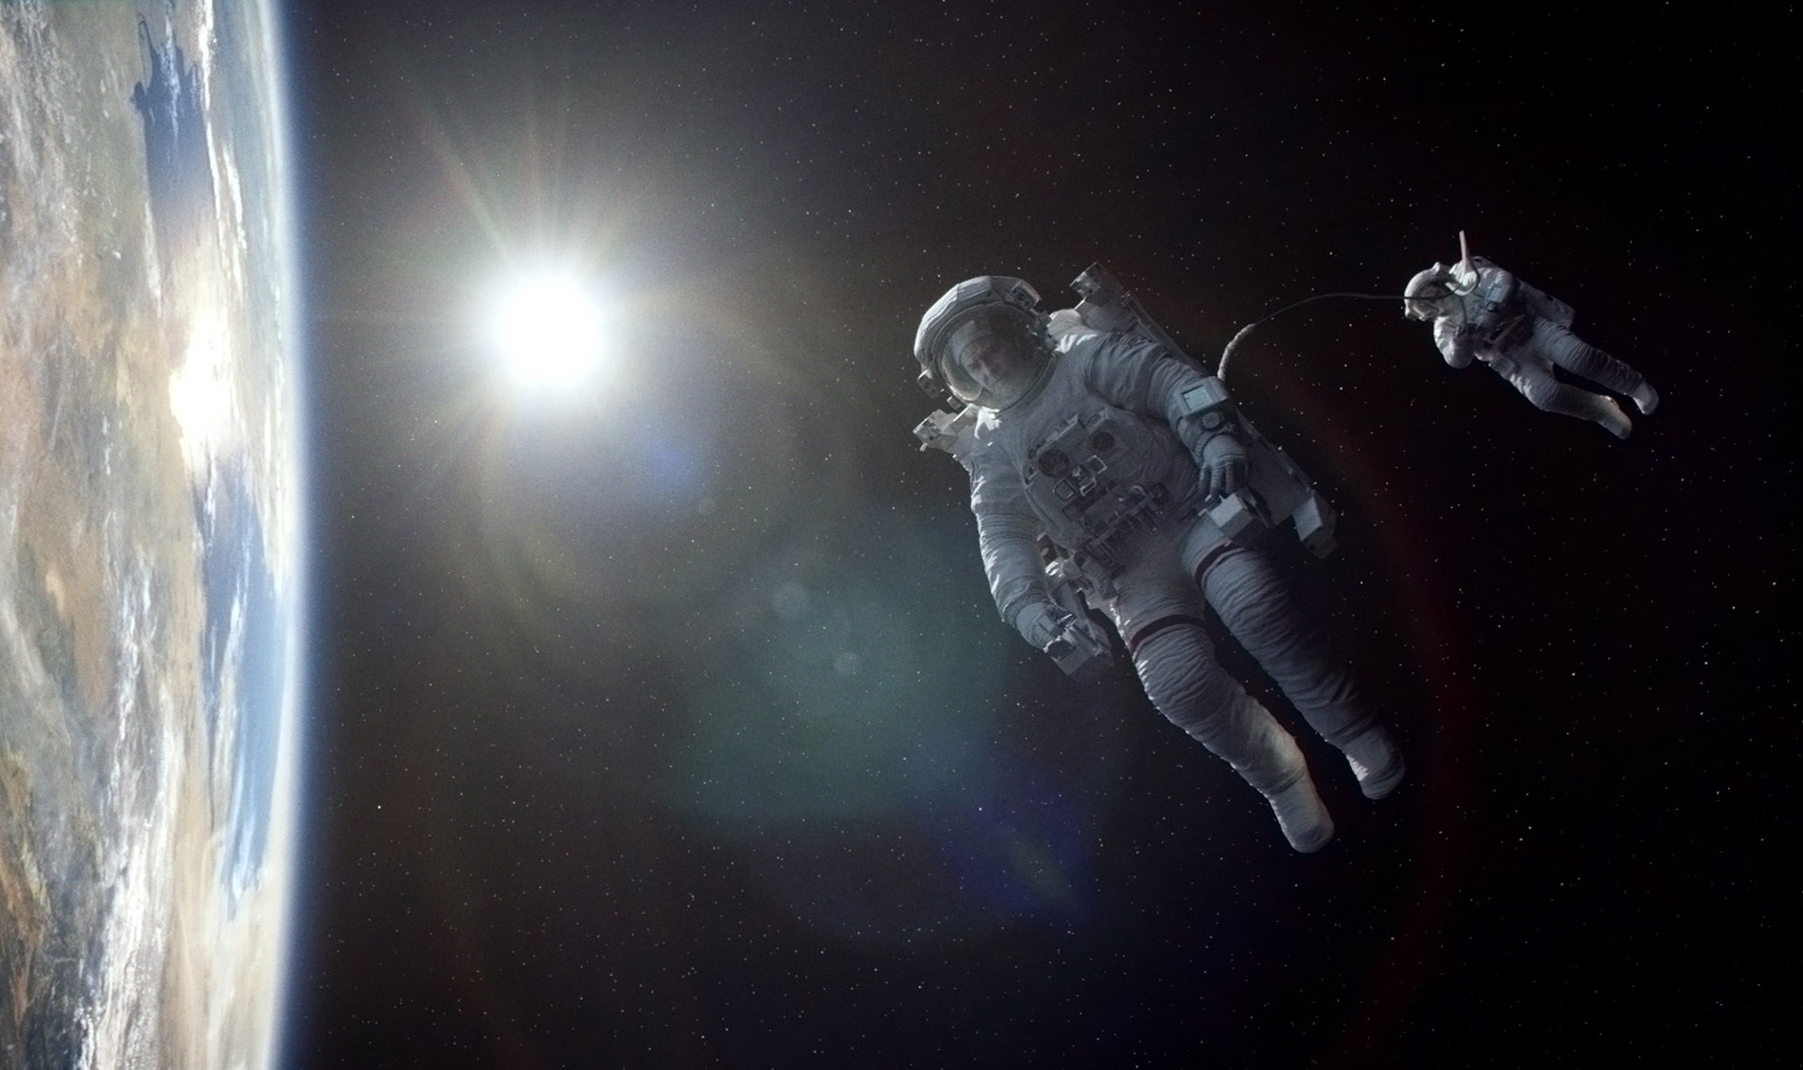 Astronauts Take In 'Gravity'